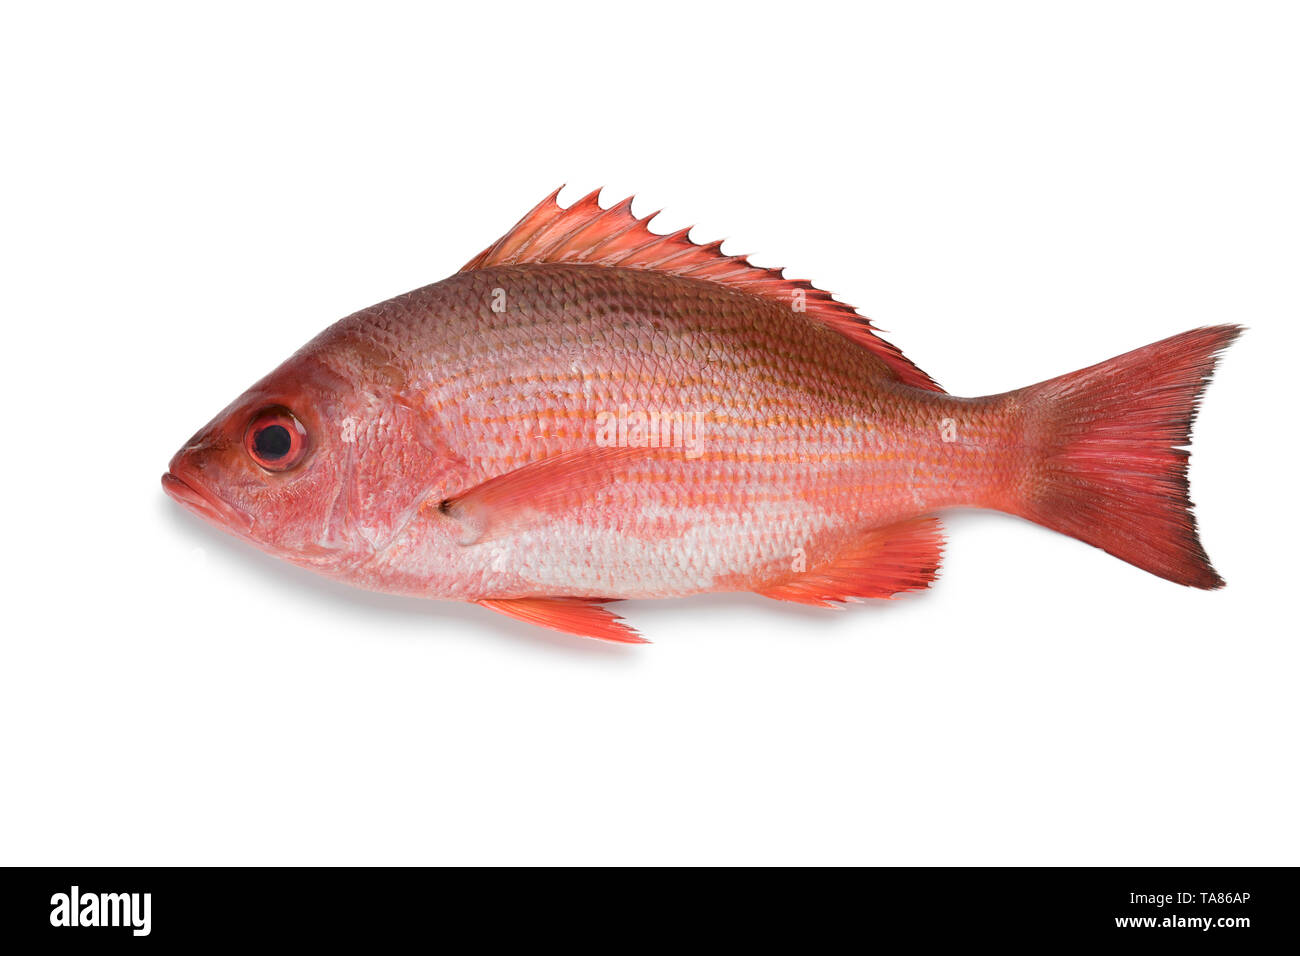 Single Northern red snapper isolated on white background Stock Photo